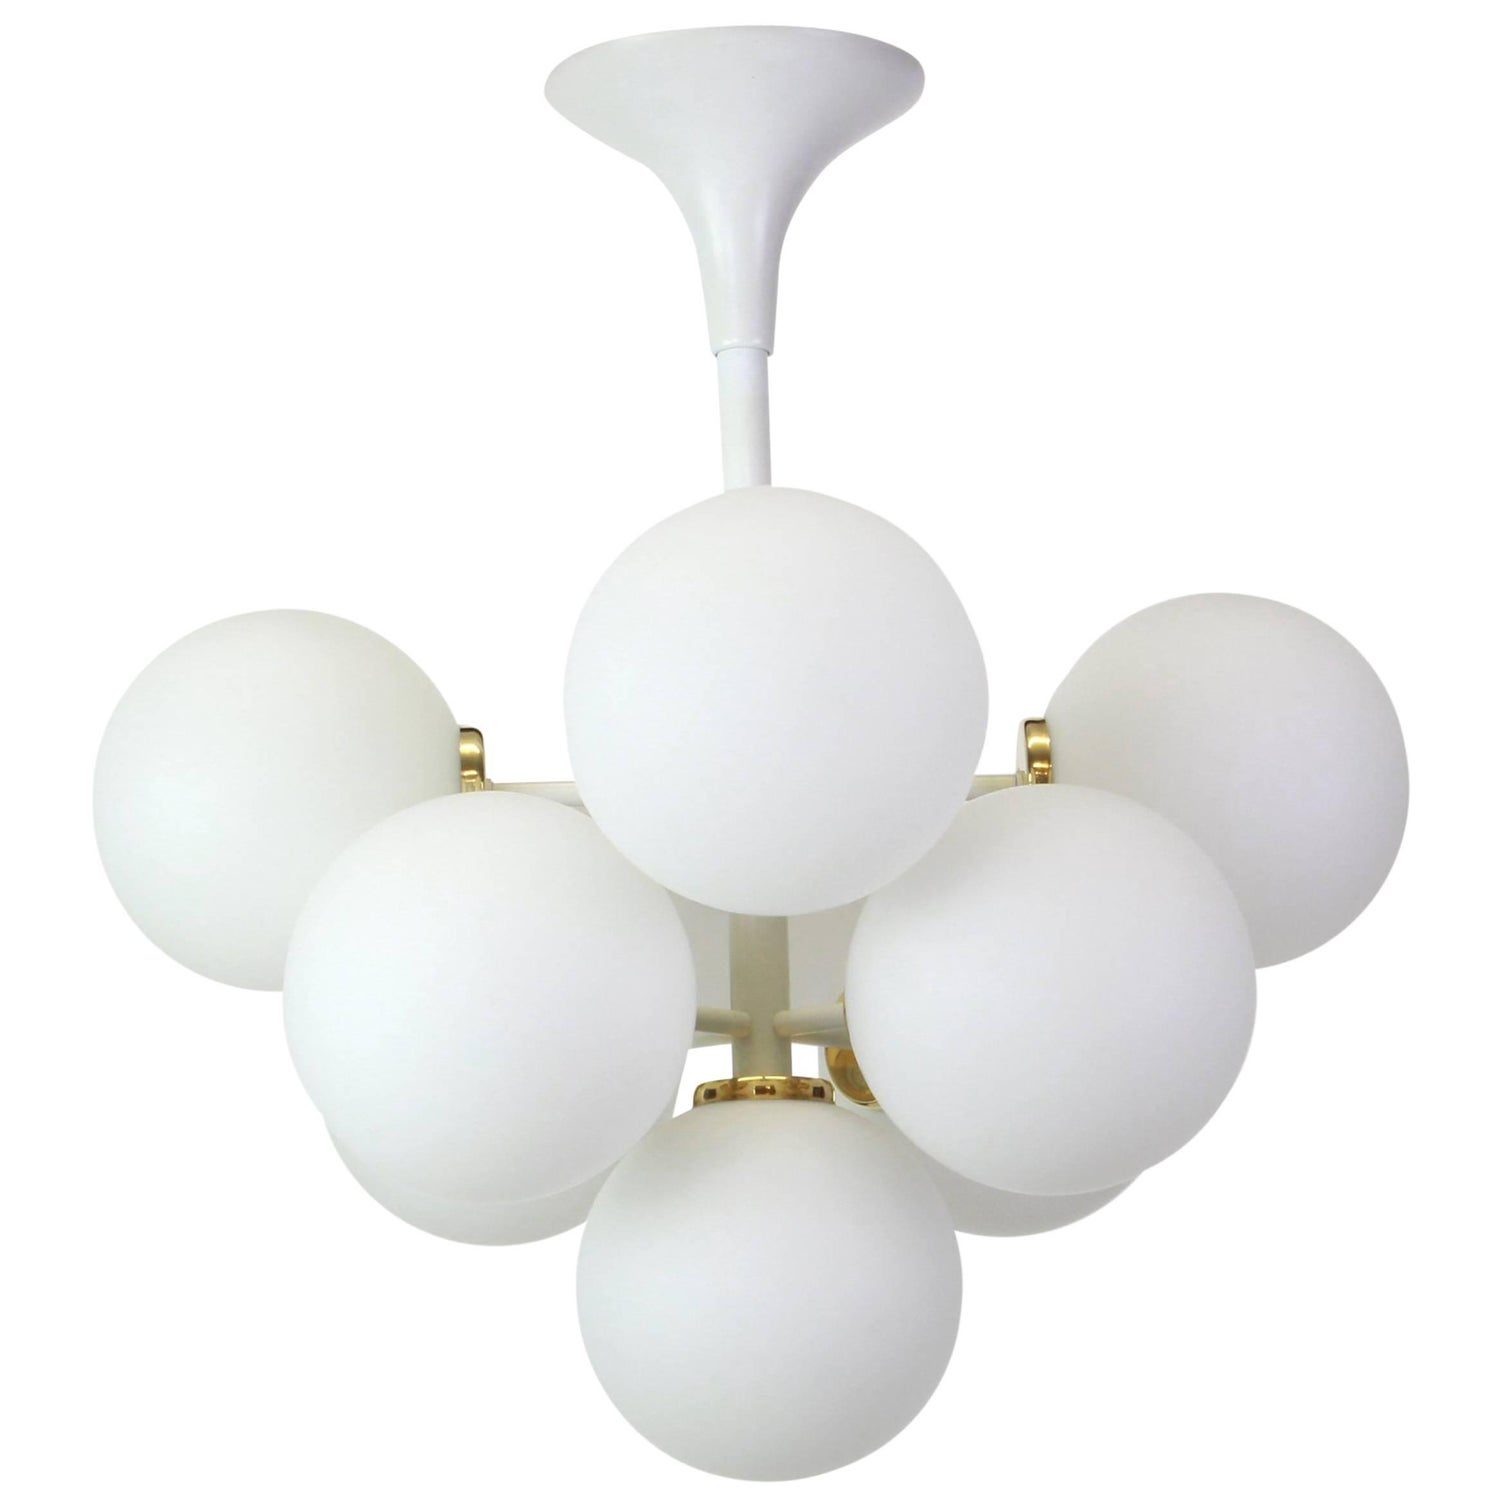 Atomic Chandelier with Opal Globes by Max Bill for Temde